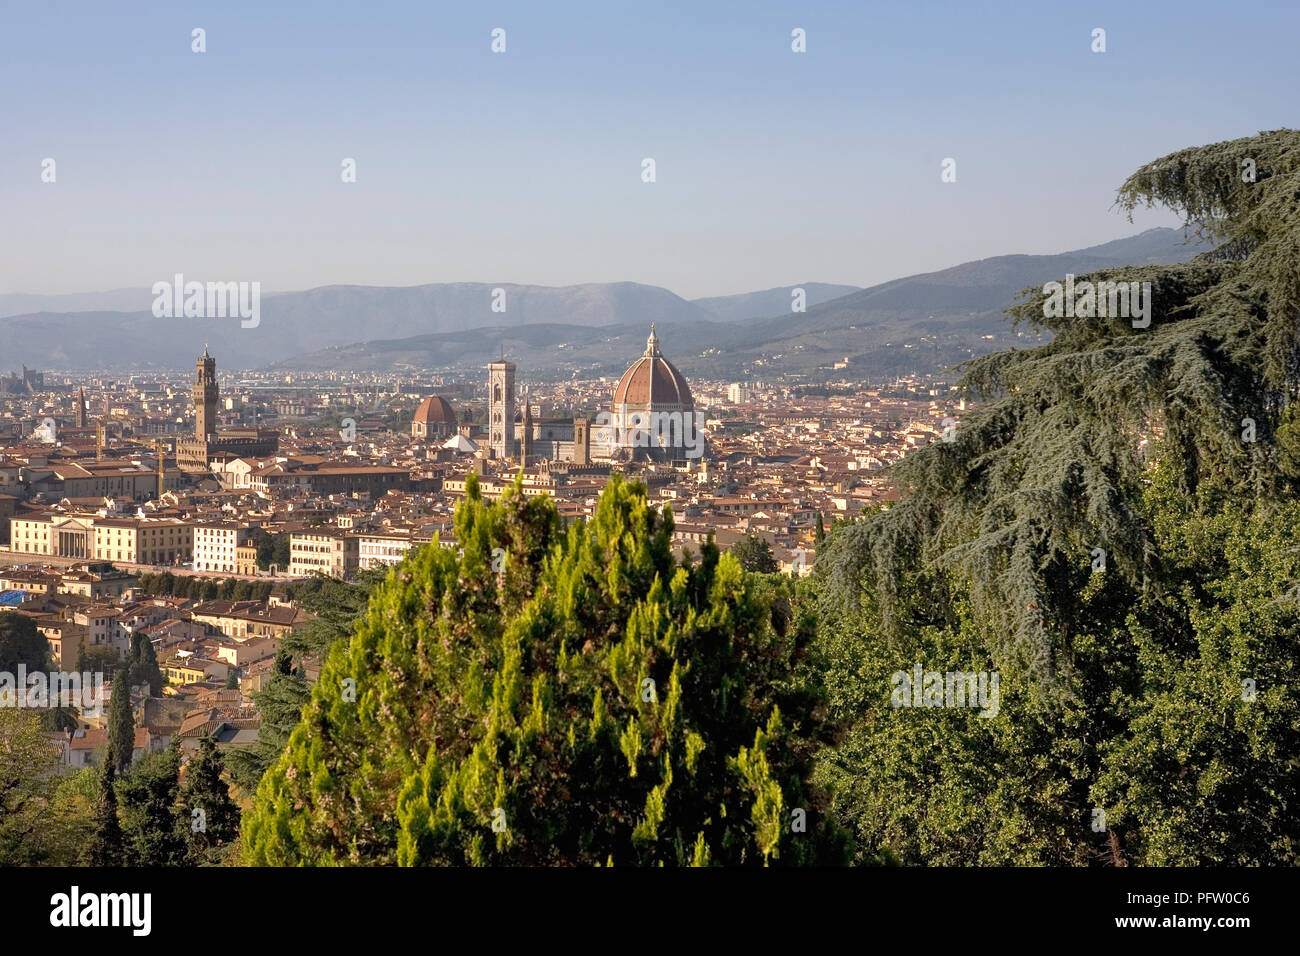 The Florence skyline, dominated by the Torre d'Arnolfo and the Campanile and dome of the Duomo, from San Miniato al Monte, Florence, Tuscany, Italy - Stock Image